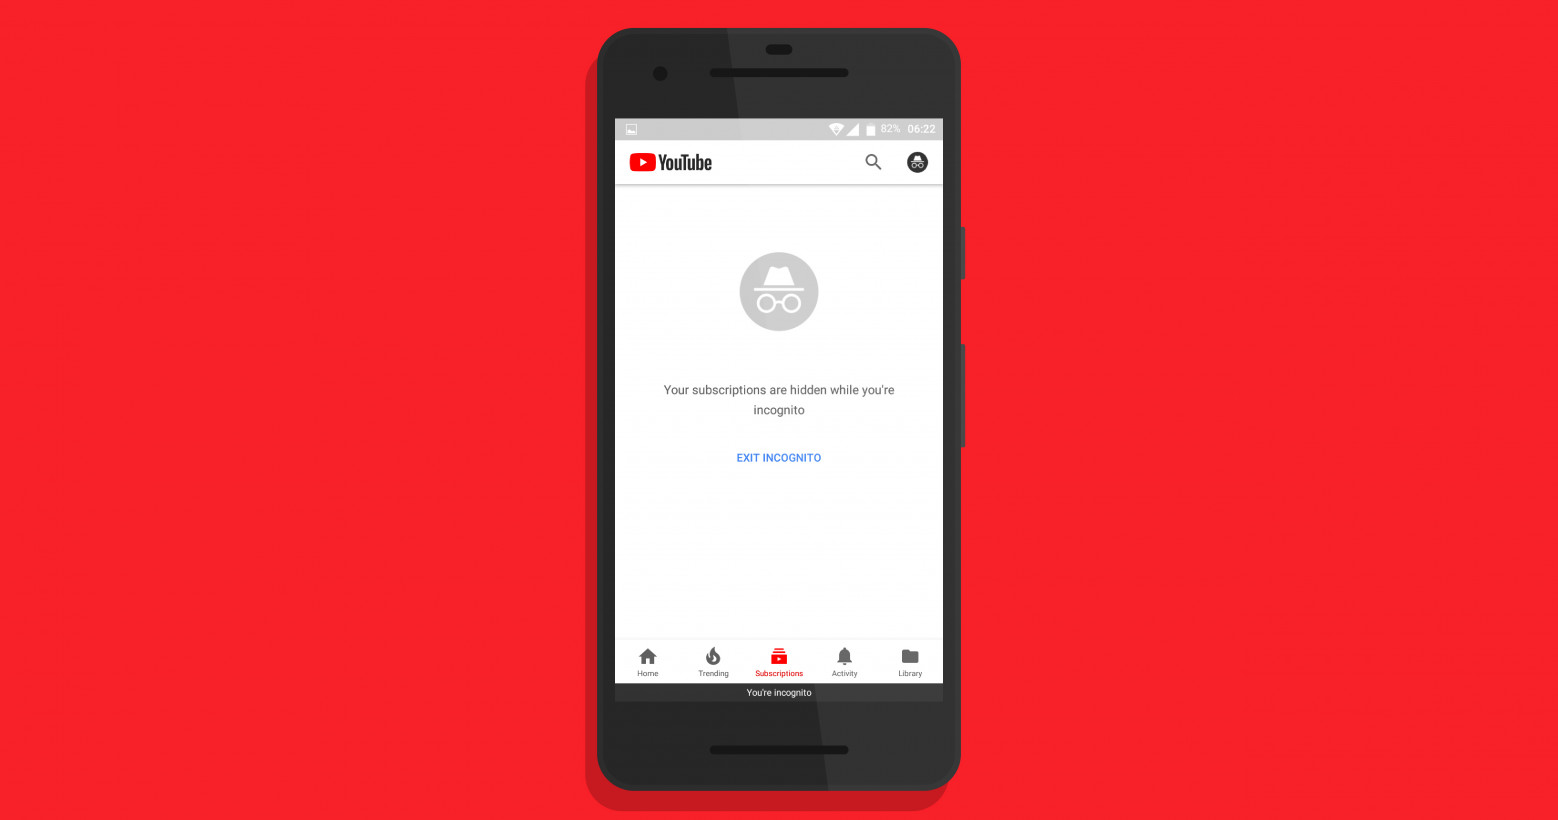 YouTube's mobile incognito mode will soon let you watch weird stuff in secret